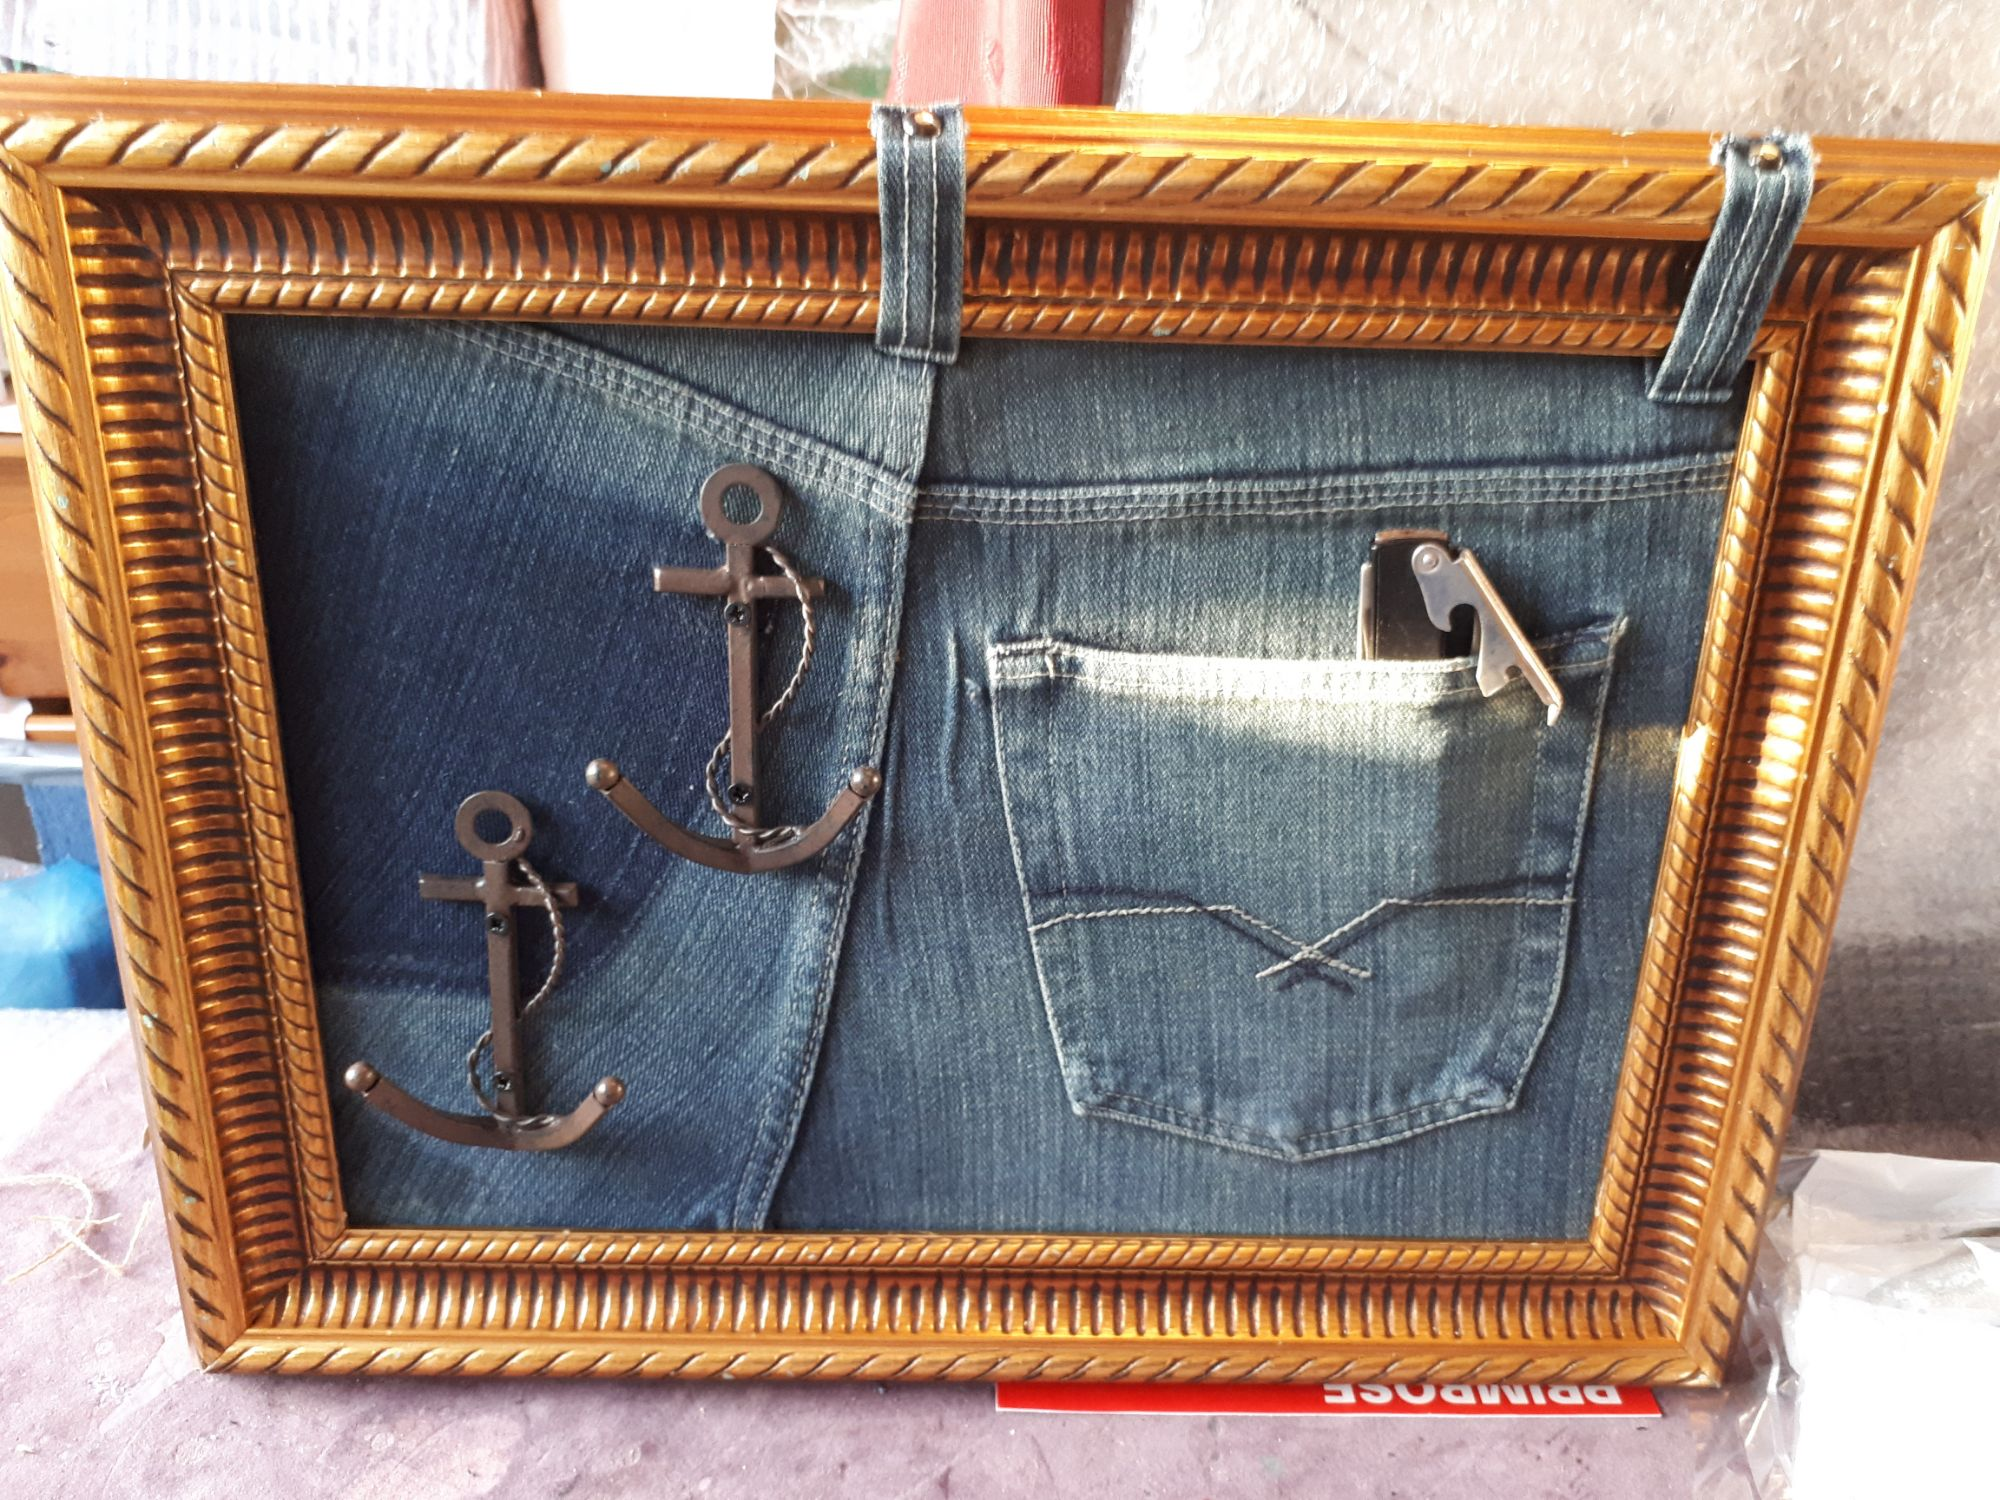 Jeans Bumframe